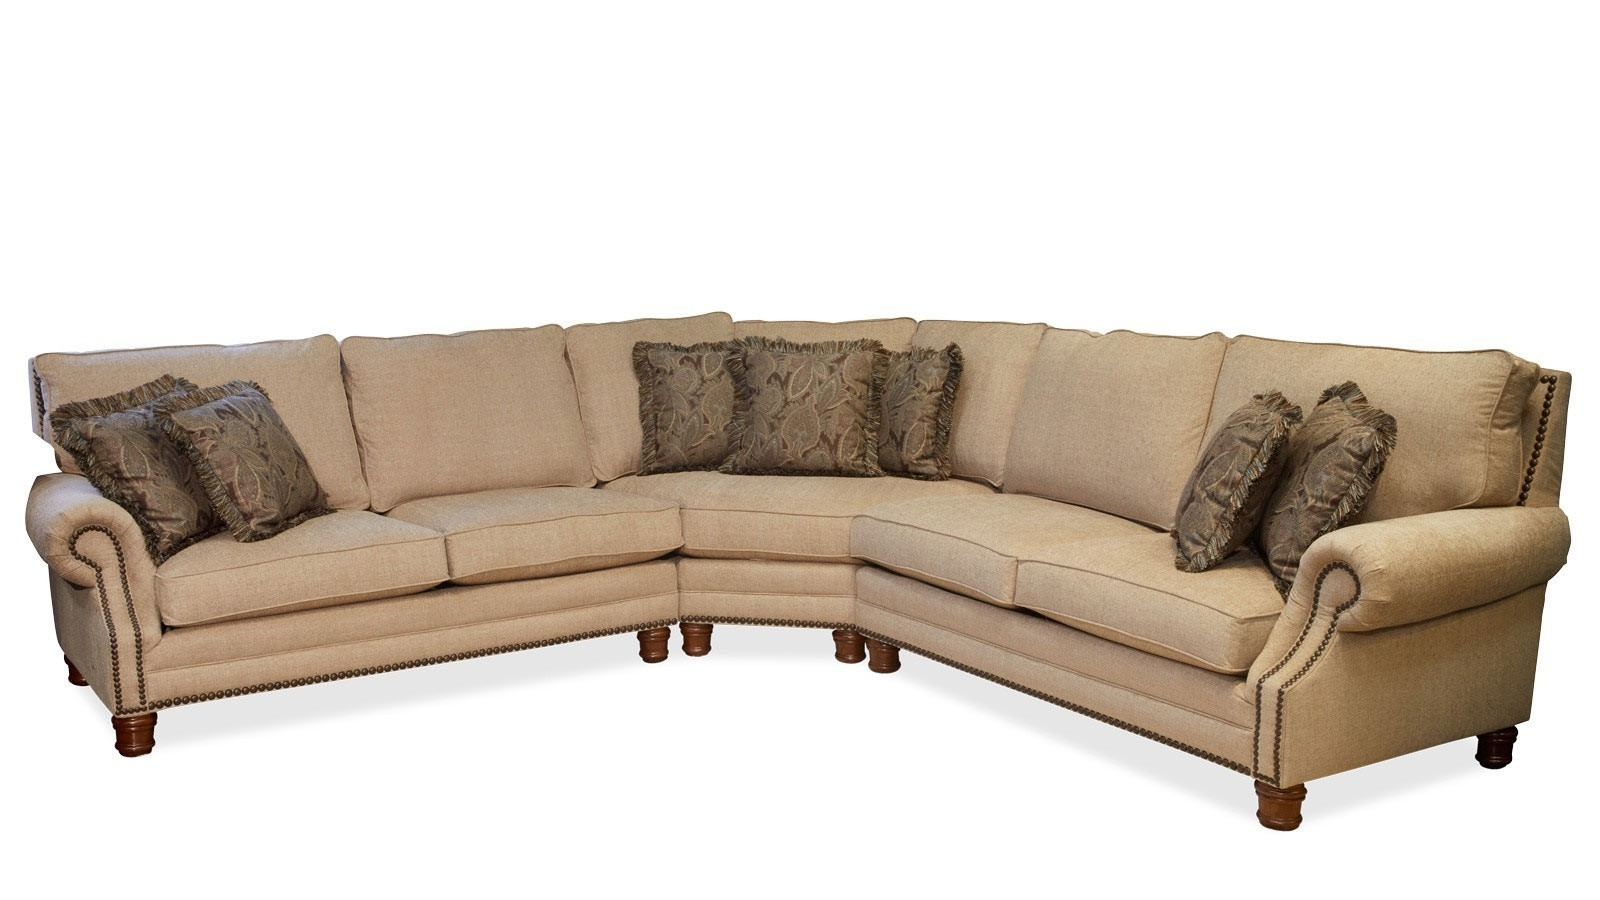 Gallery Furniture Regarding 2019 Gallery Furniture Sectional Sofas (View 7 of 20)